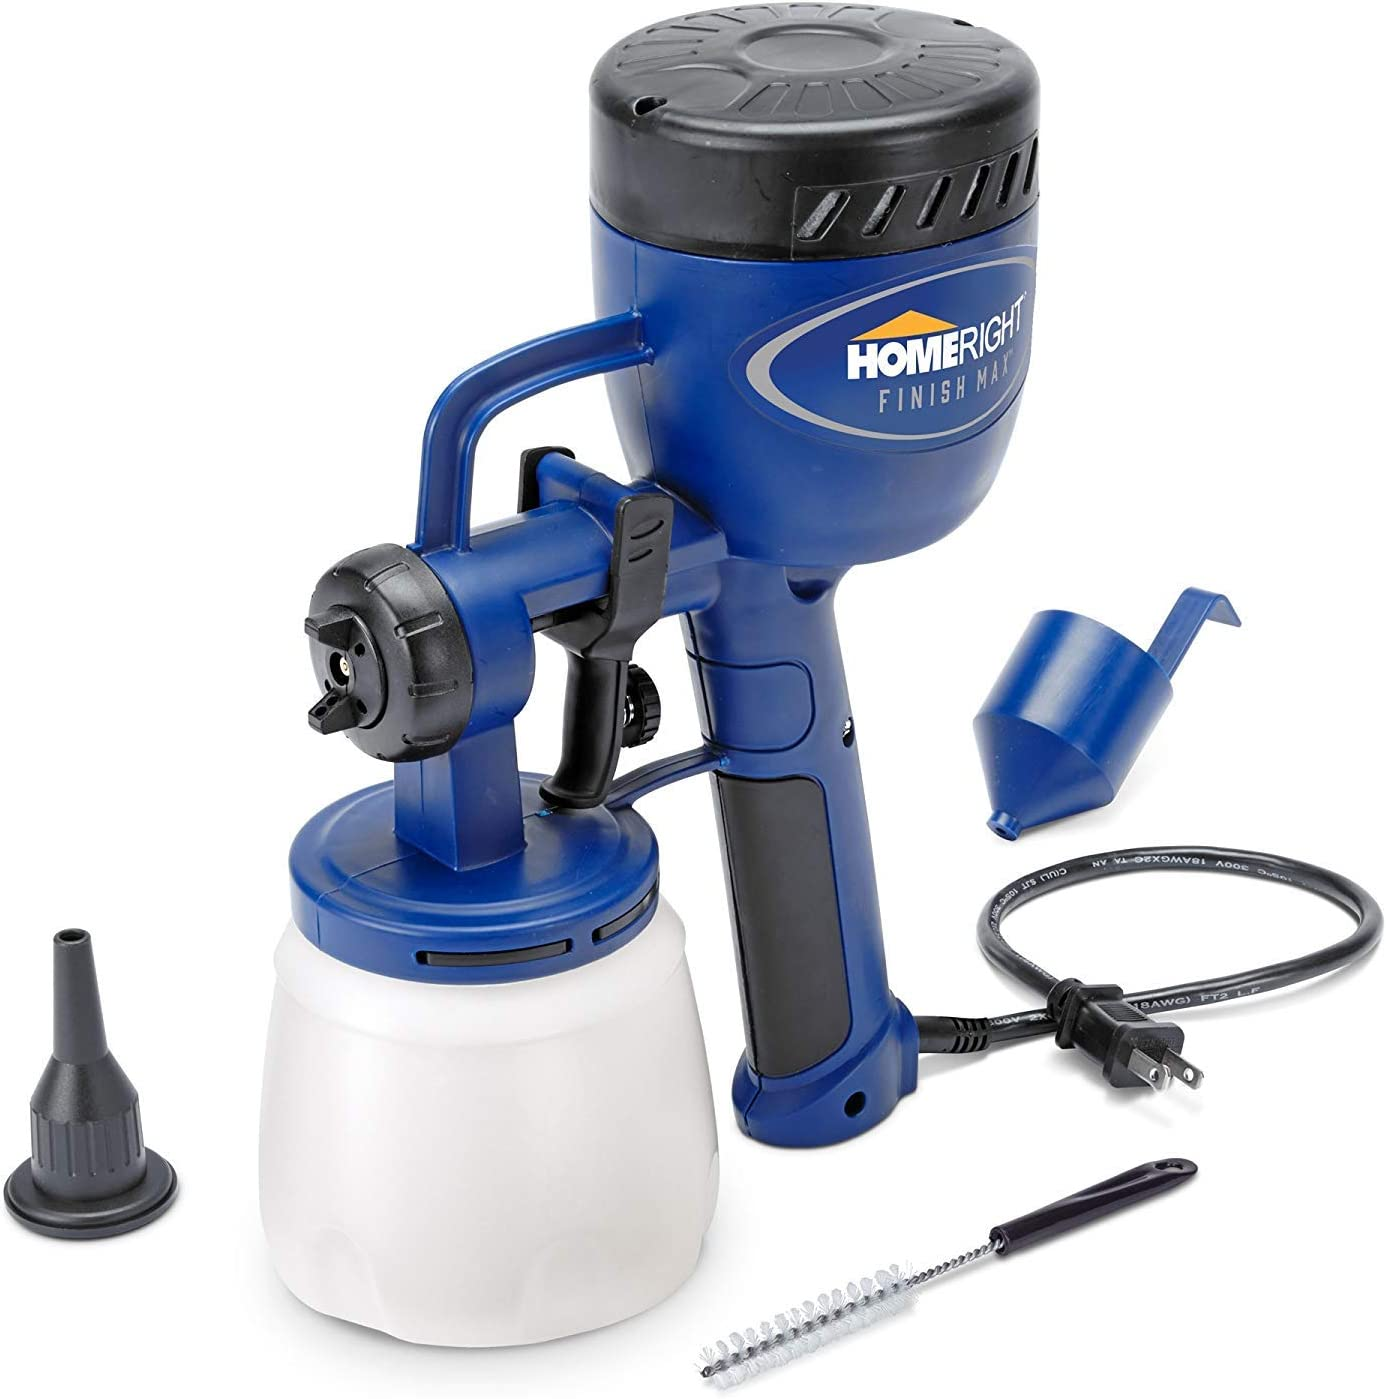 HomeRight C800766 Finish Max Review